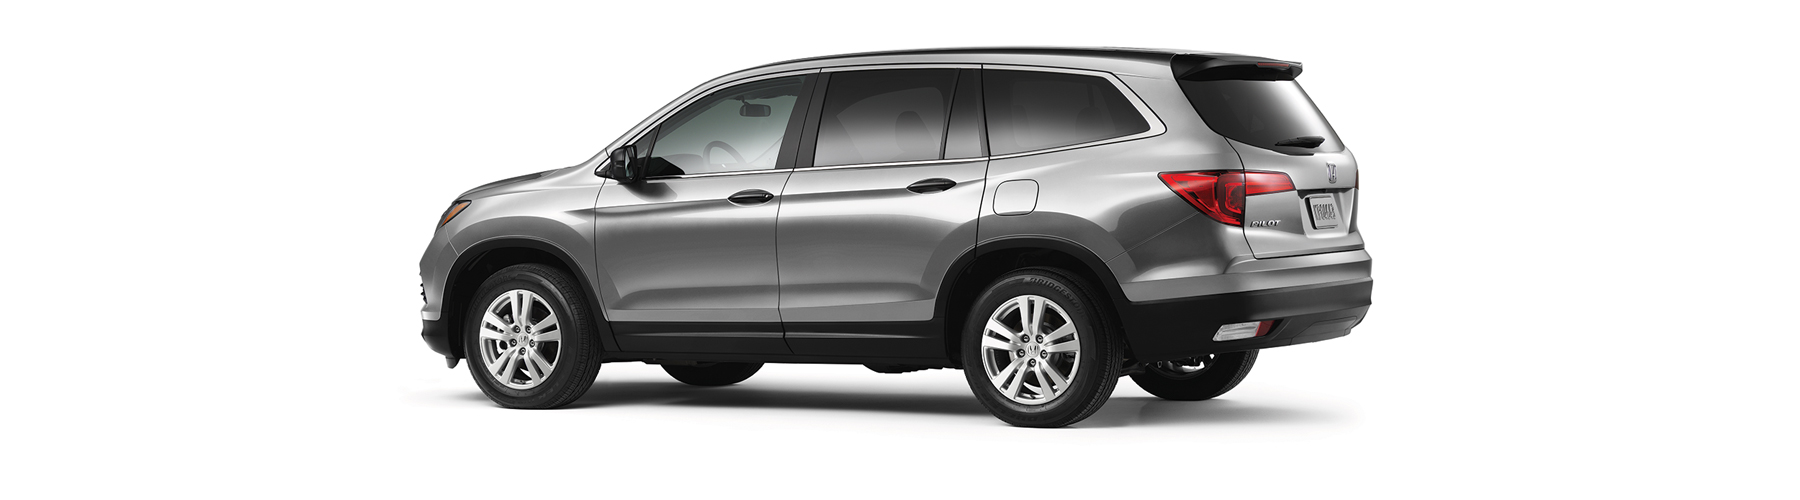 2017 honda pilot new england honda dealers new honda suvs for New honda pilot 2017